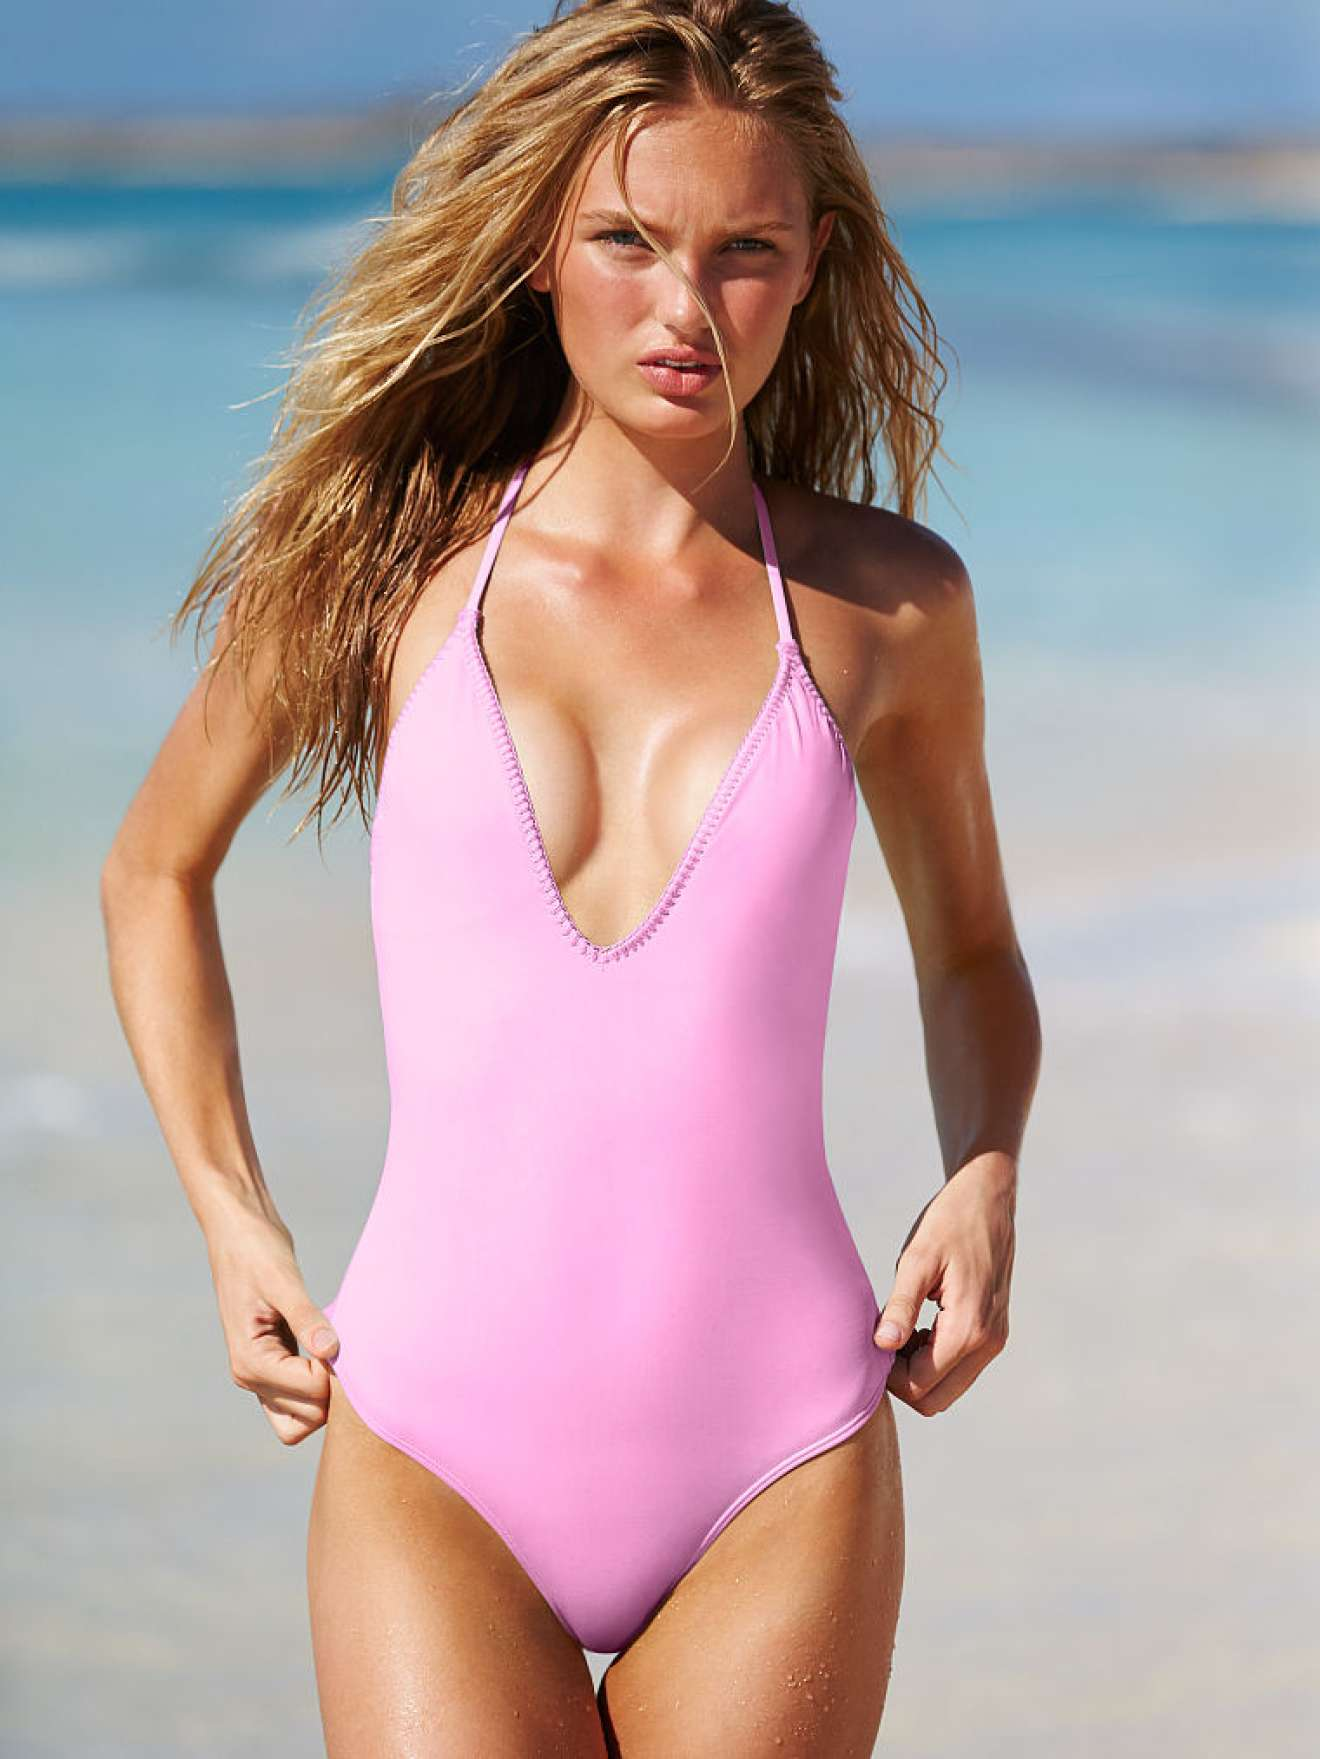 Romee Strijd Victorias Secret Shoot